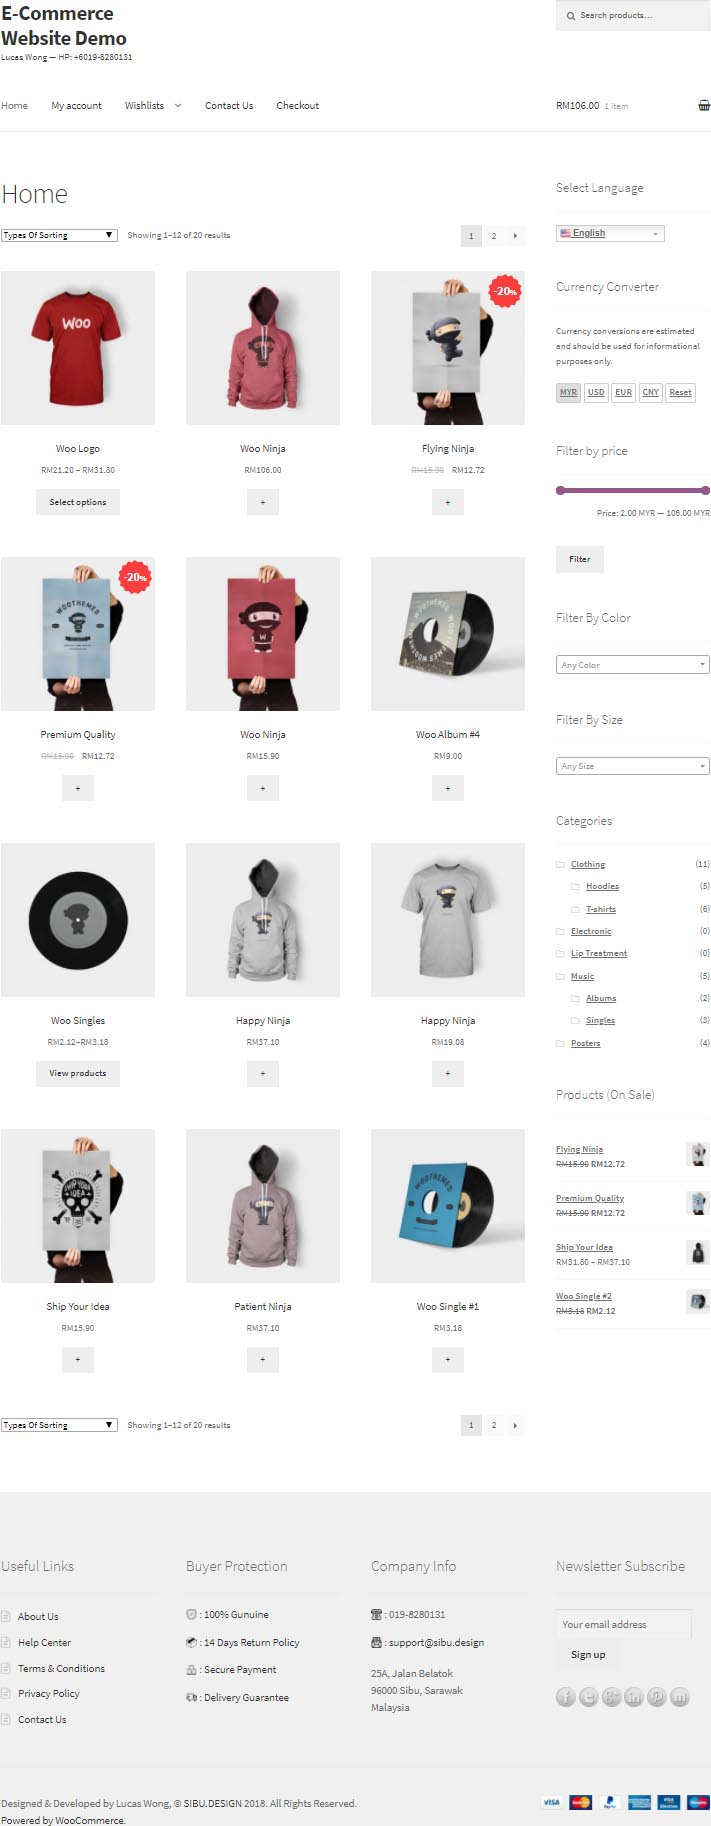 eCommerce Website Demo 1